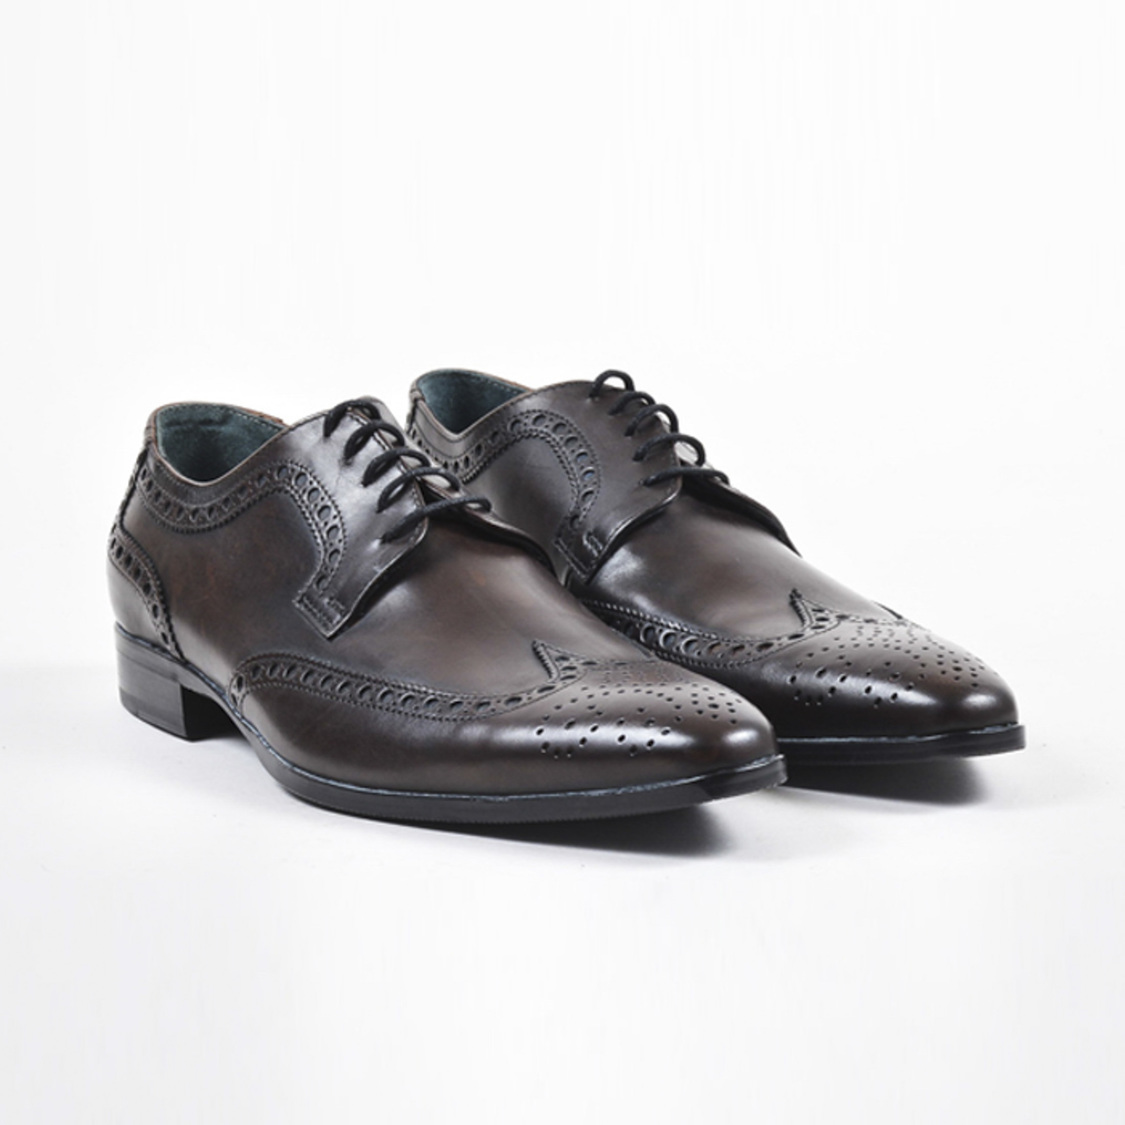 Up Gabbana Sz Lace D Wingtips amp;g 42Ebay Brogues Men's Dolceamp; Derby PXZiOuwTk